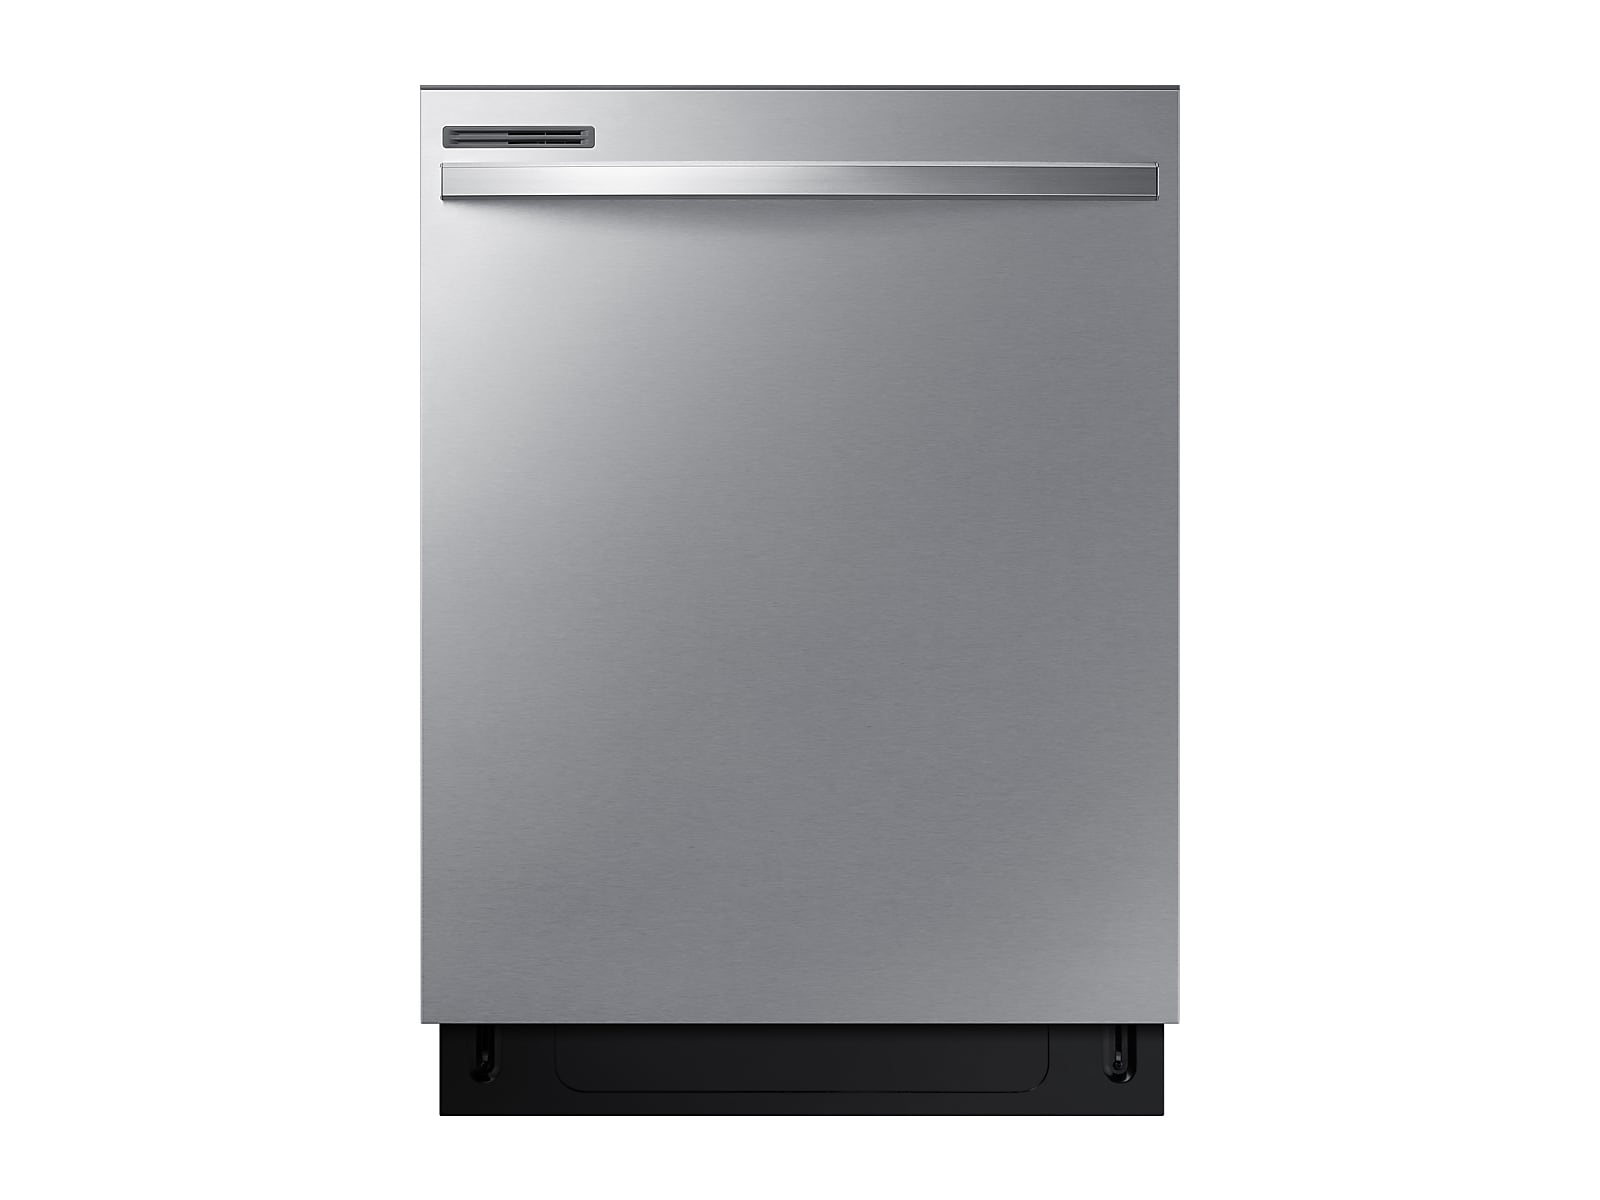 Digital Touch Control 55 Dba Dishwasher In Stainless Steel Dishwasher Dw80r2031us Aa Samsung Us Stainless Steel Dishwasher Top Control Dishwasher Stainless Steel Doors